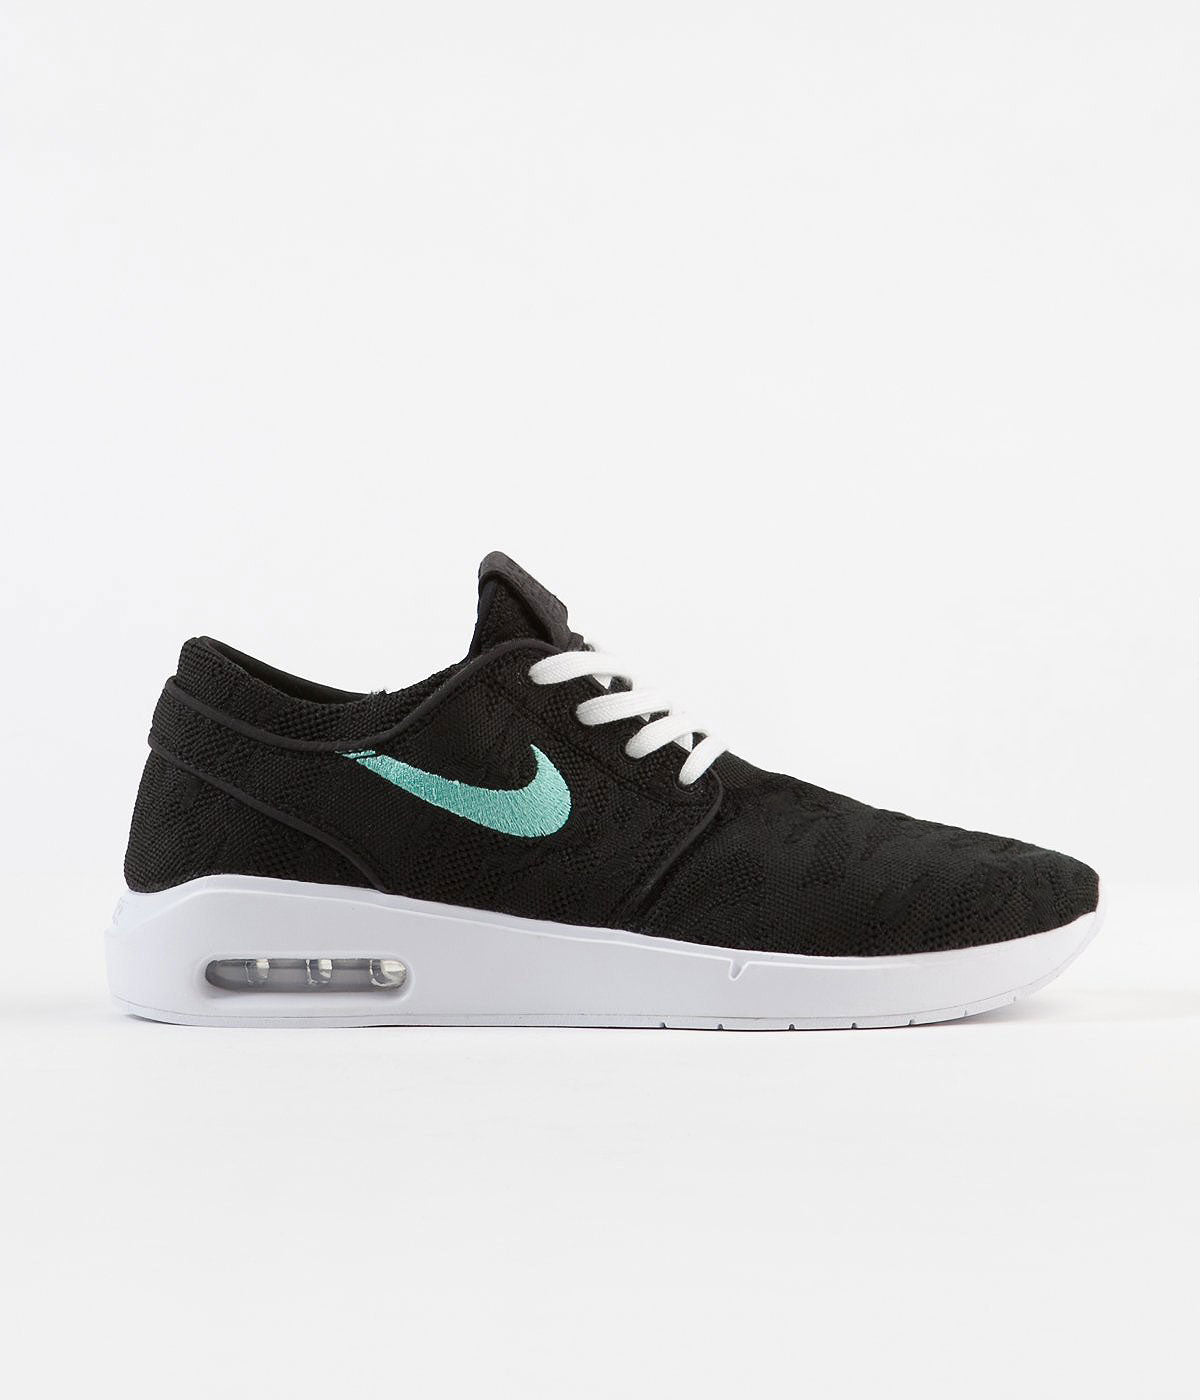 Nike SB Air Max Janoski 2 Shoes - Black / Mint - Black